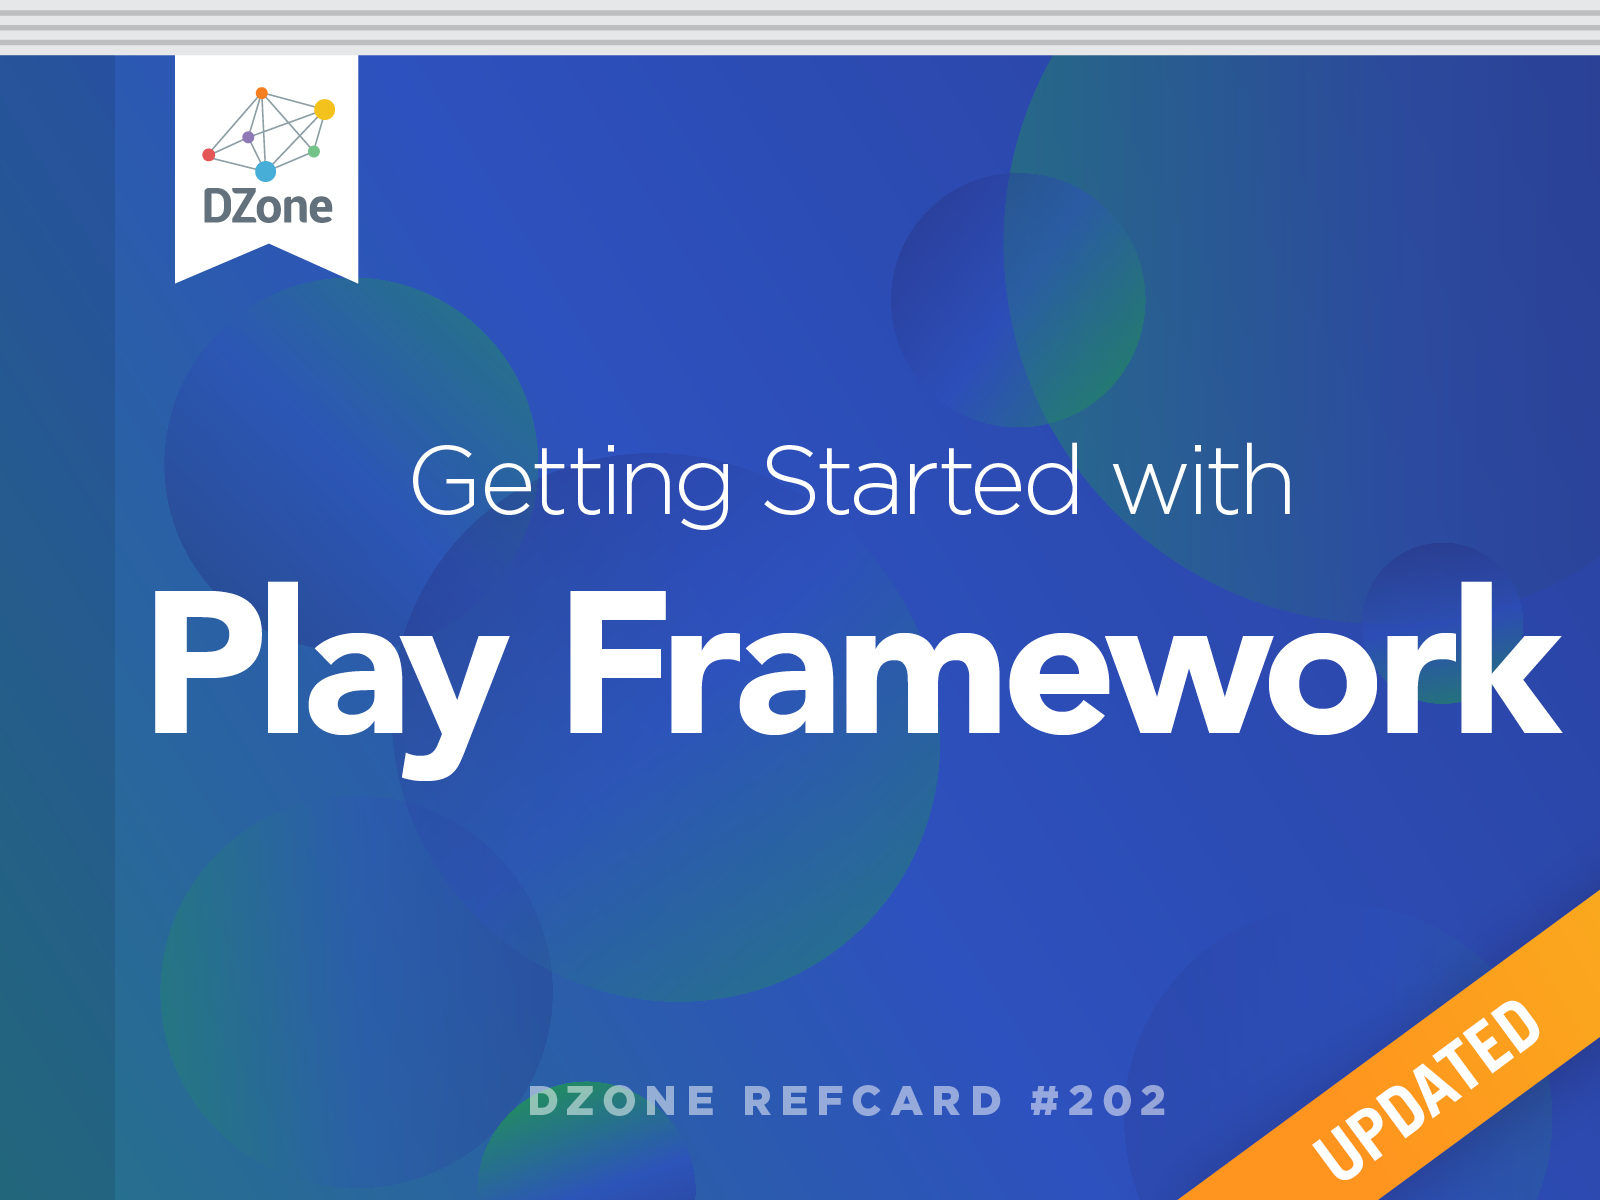 getting started with play framework - dzone - refcardz